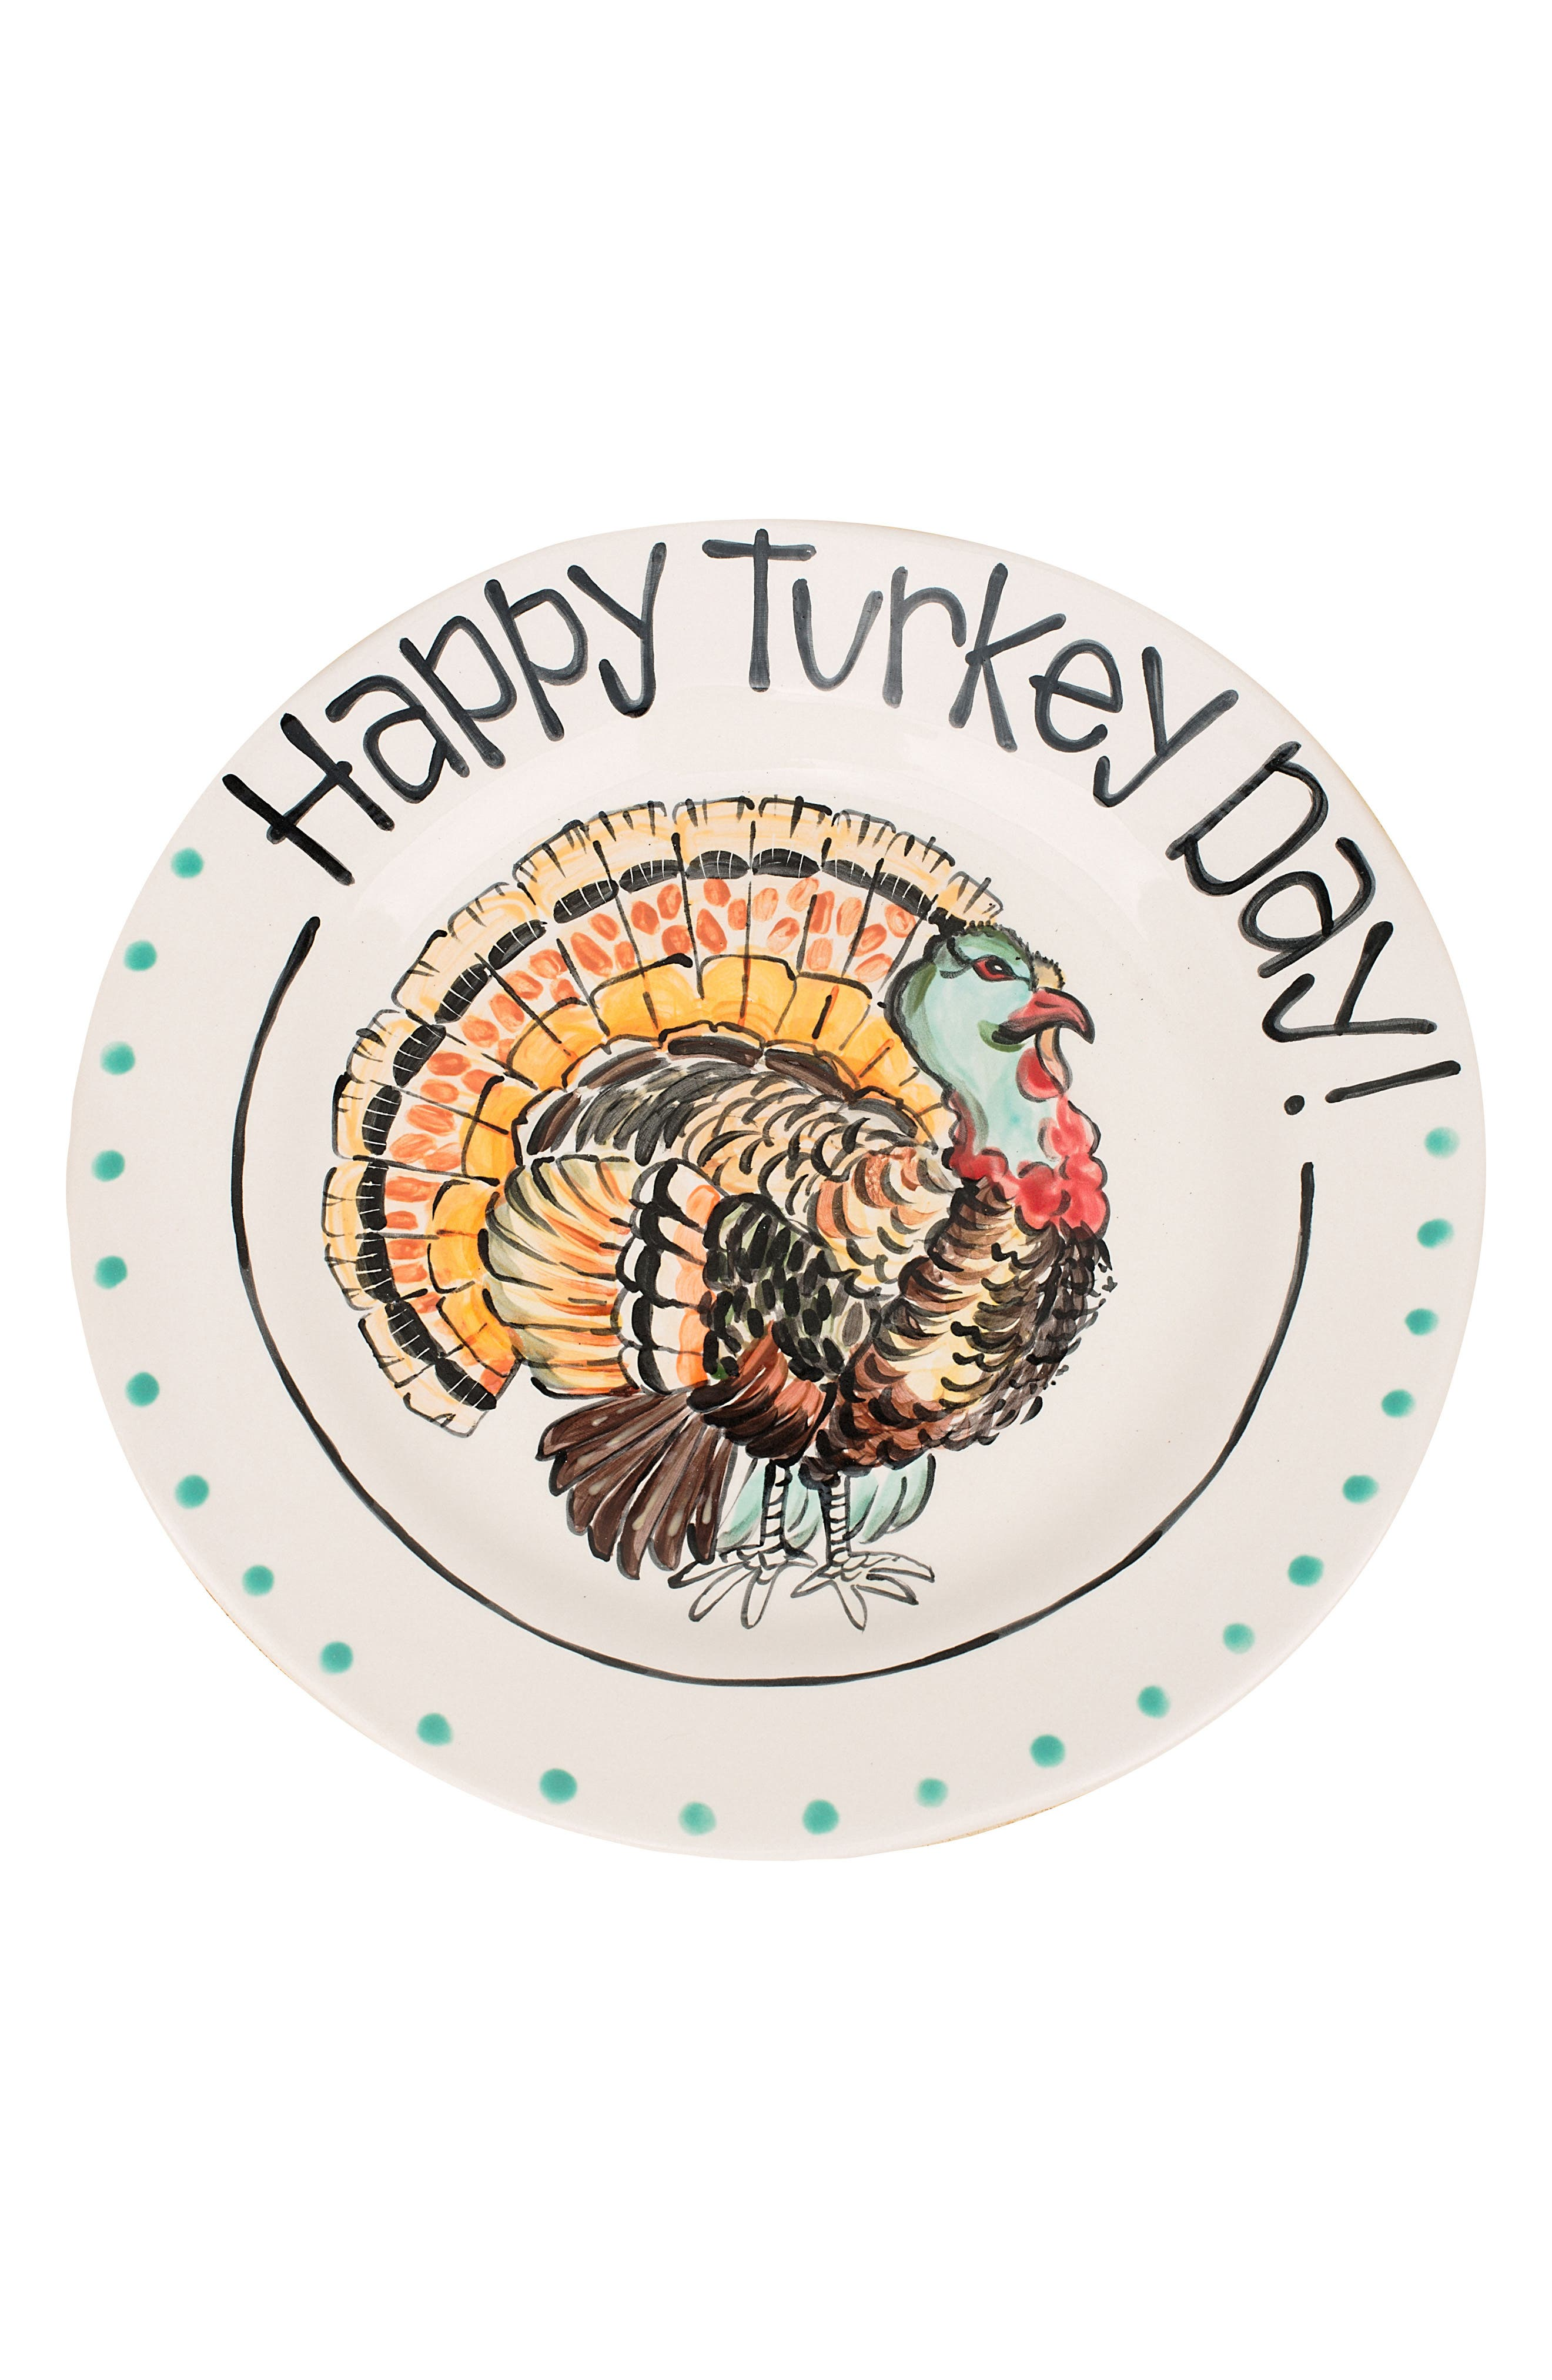 Happy Turkey Day Plate,                             Main thumbnail 1, color,                             Gold/ Multi